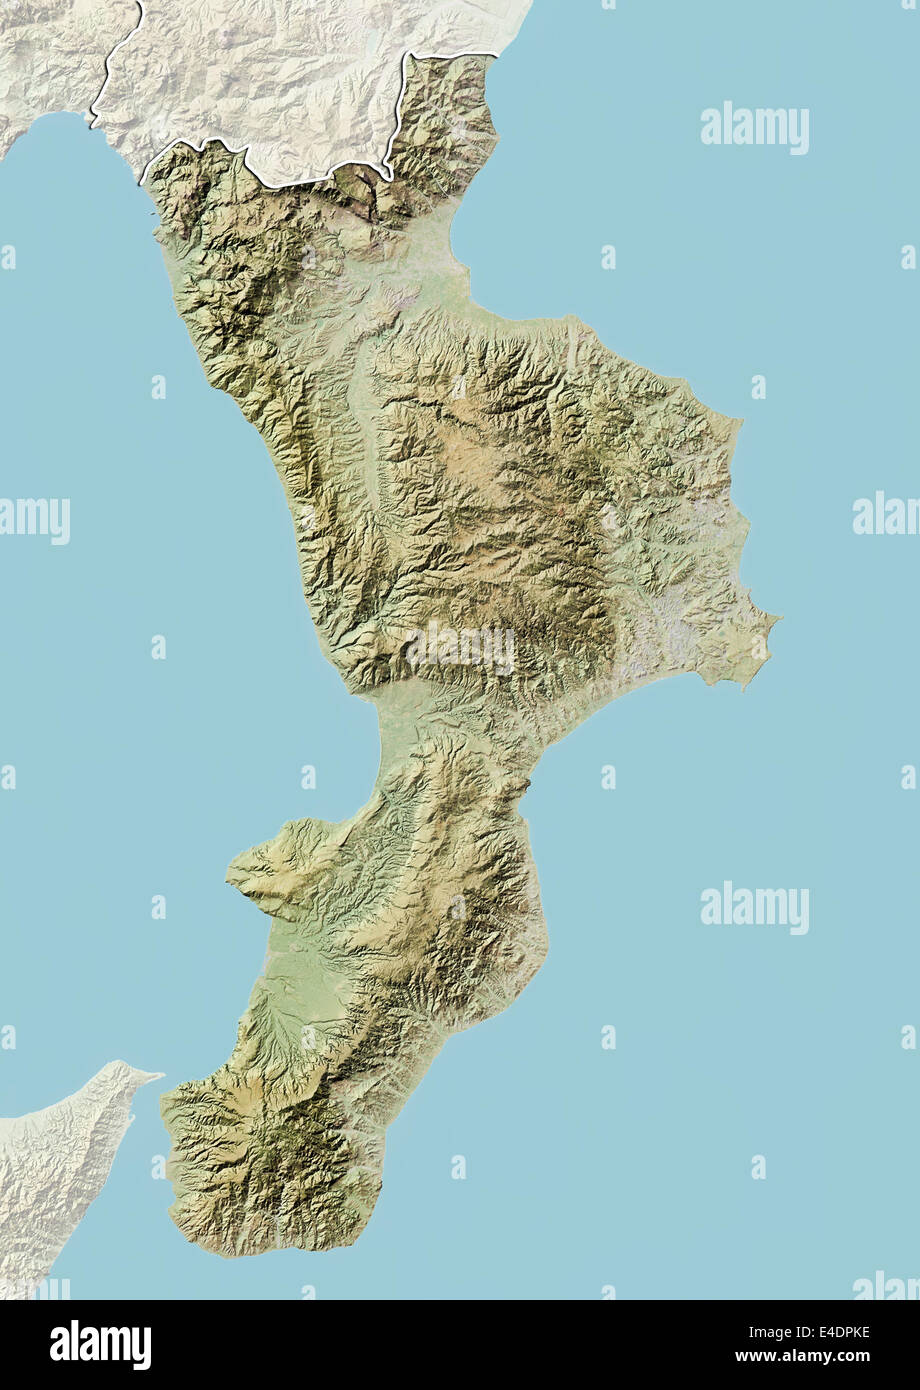 Region Of Calabria Italy Relief Map Stock Photo 71603266 Alamy